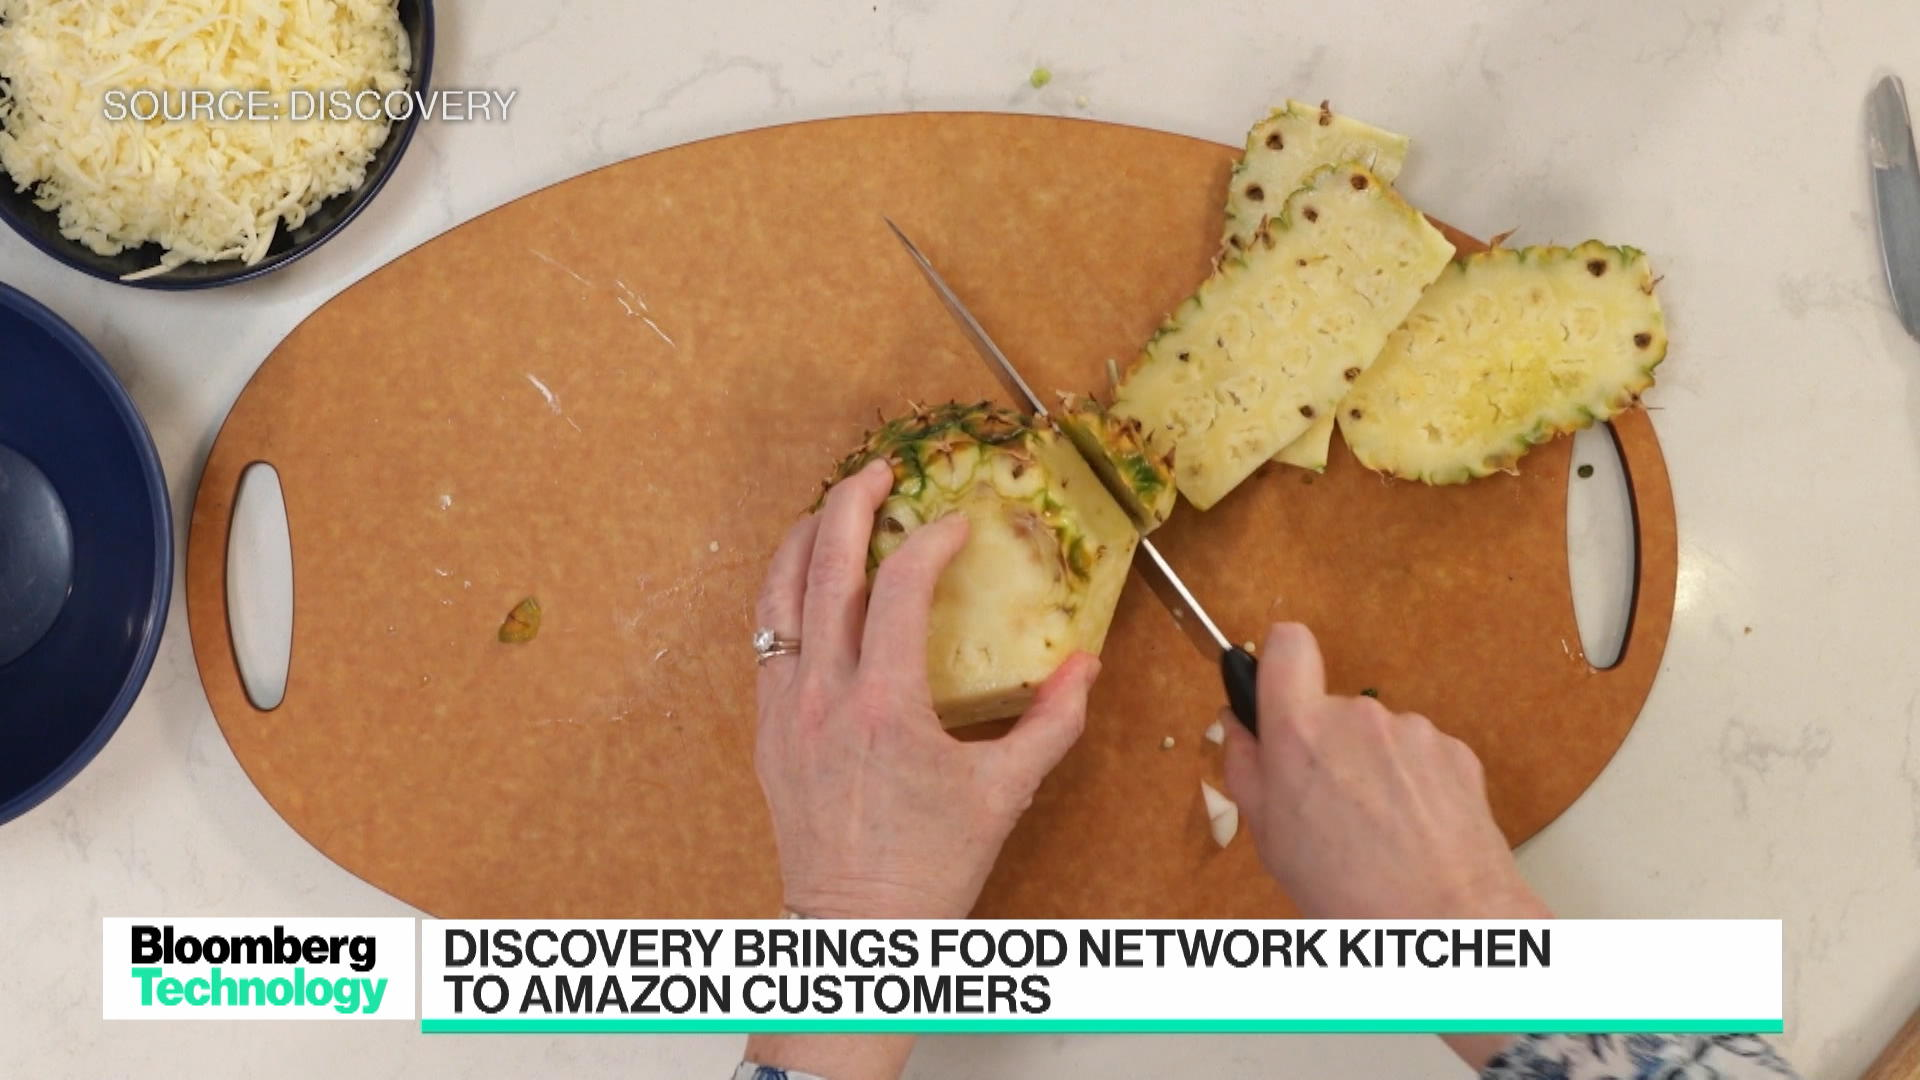 Discovery Brings Food Network Kitchen